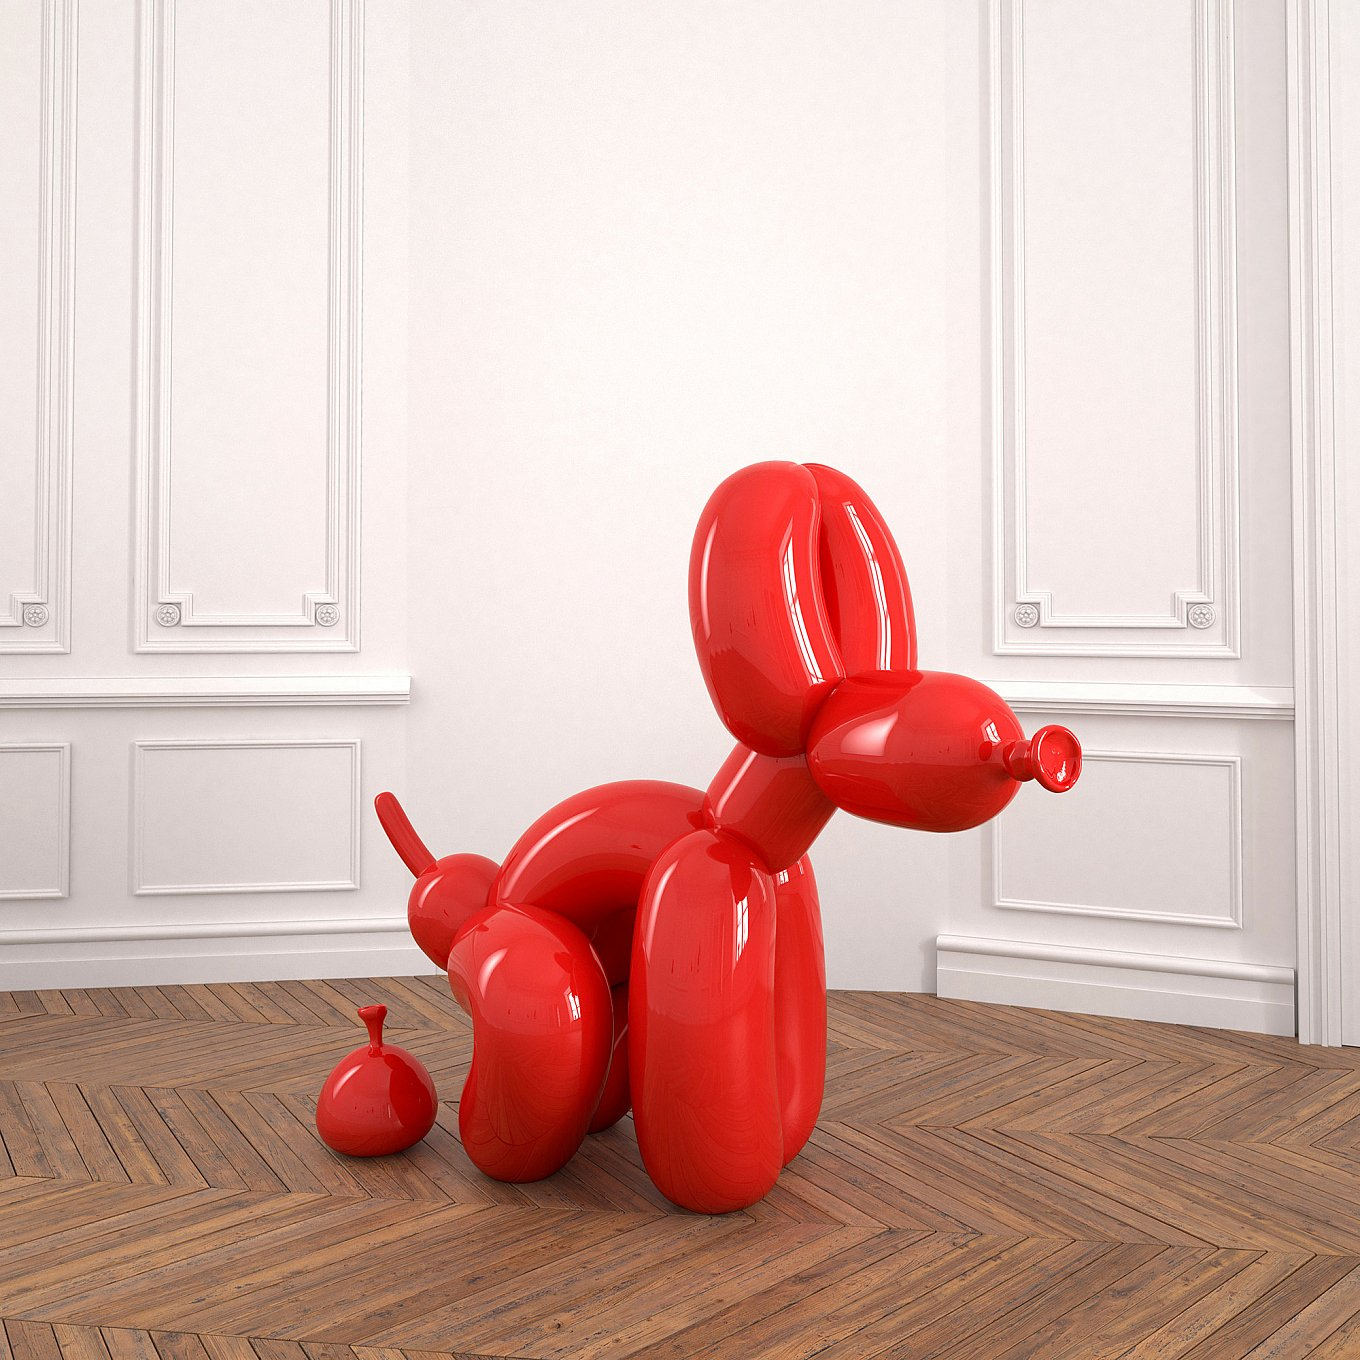 popek-balloon-squatting-dog-gessato-6